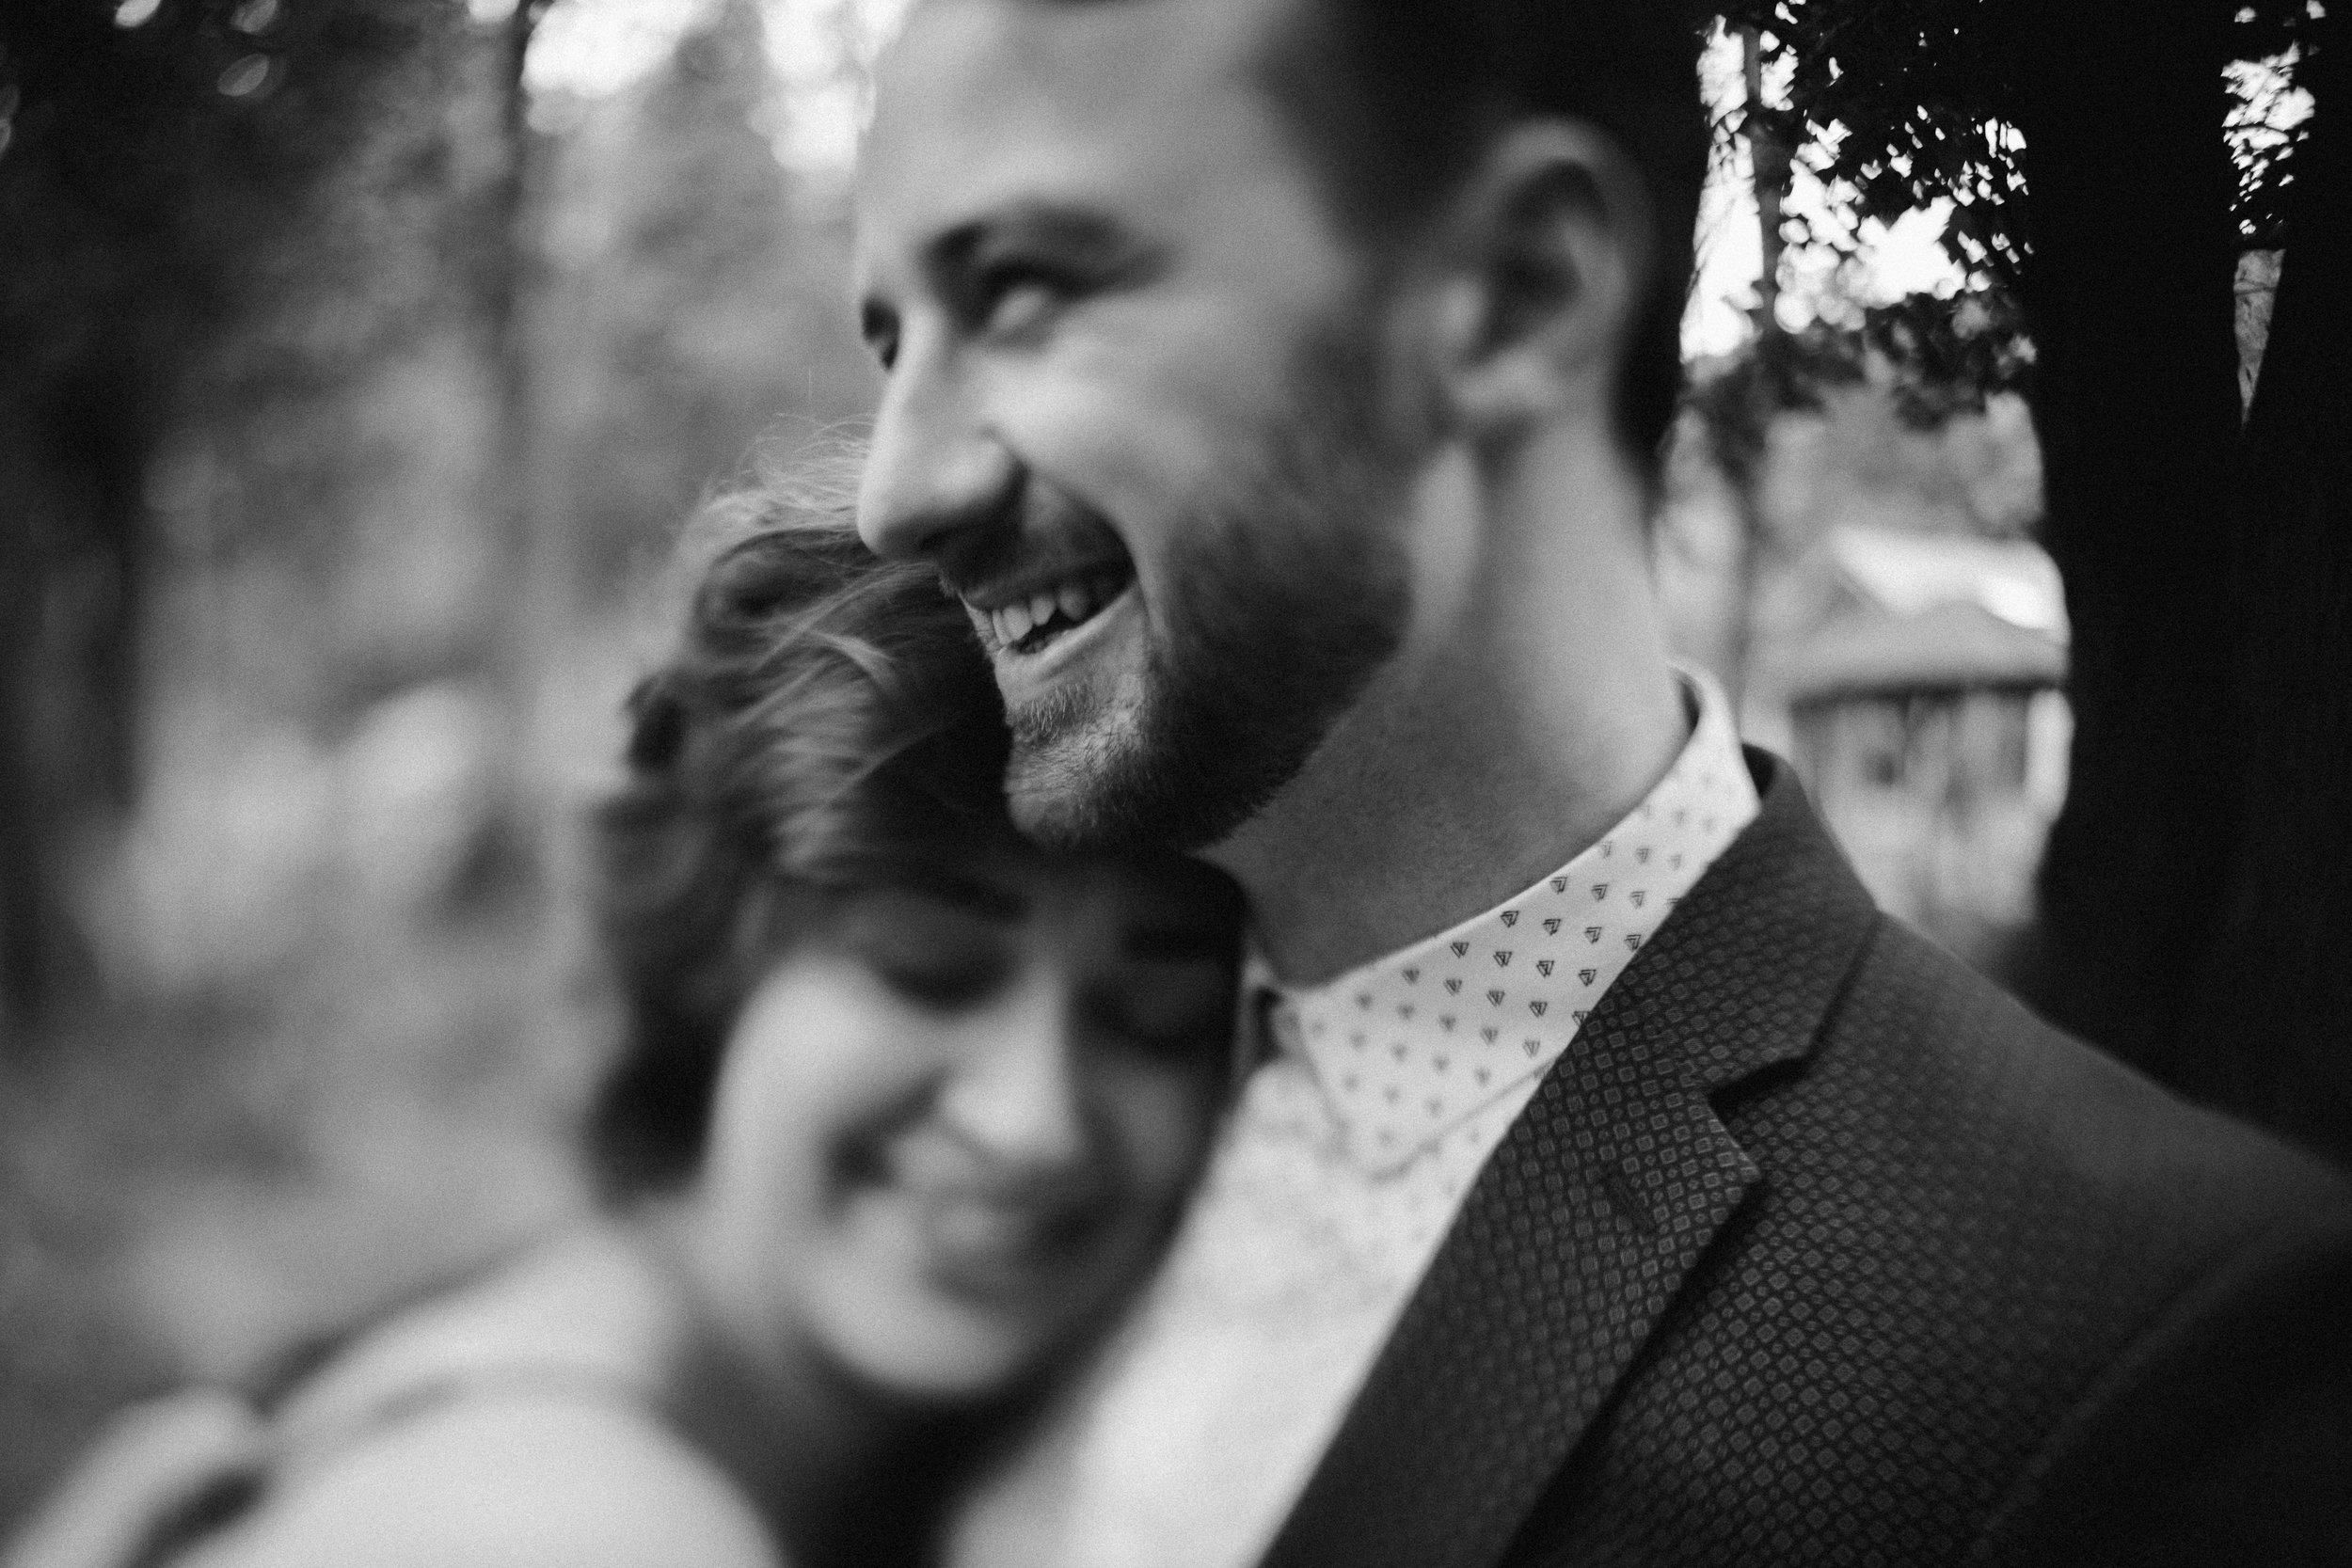 Alex and Dan Engagement Photography by Love Luella-8696.jpg